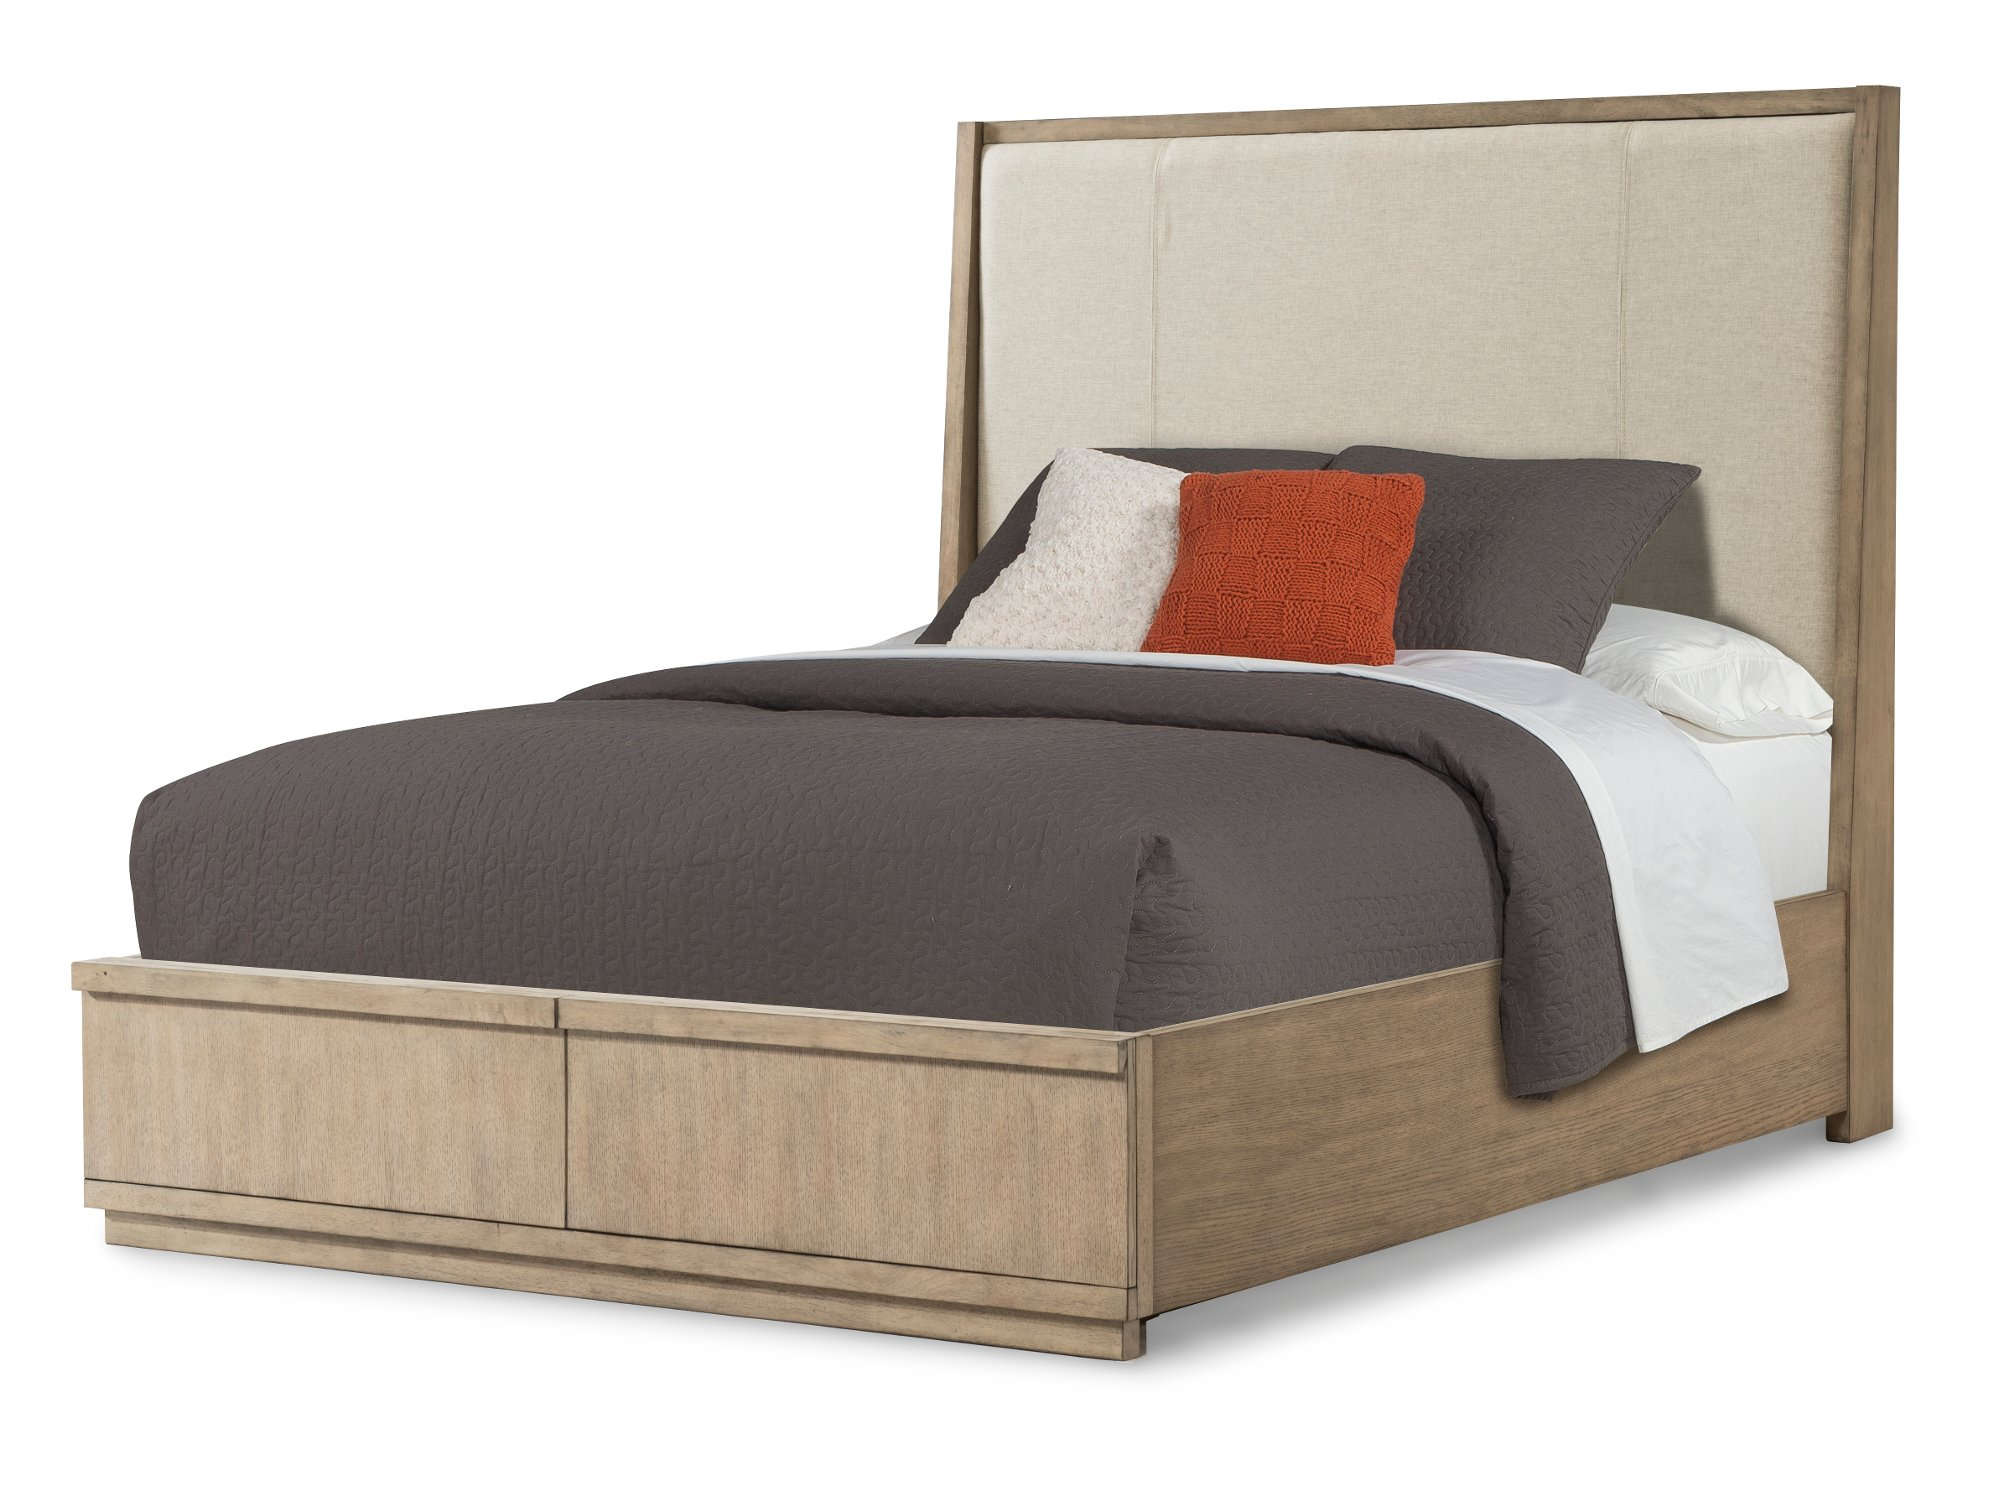 Bed Furniture Stores Melbourne Modern Driftwood Gray 6 Piece Queen Bedroom Set